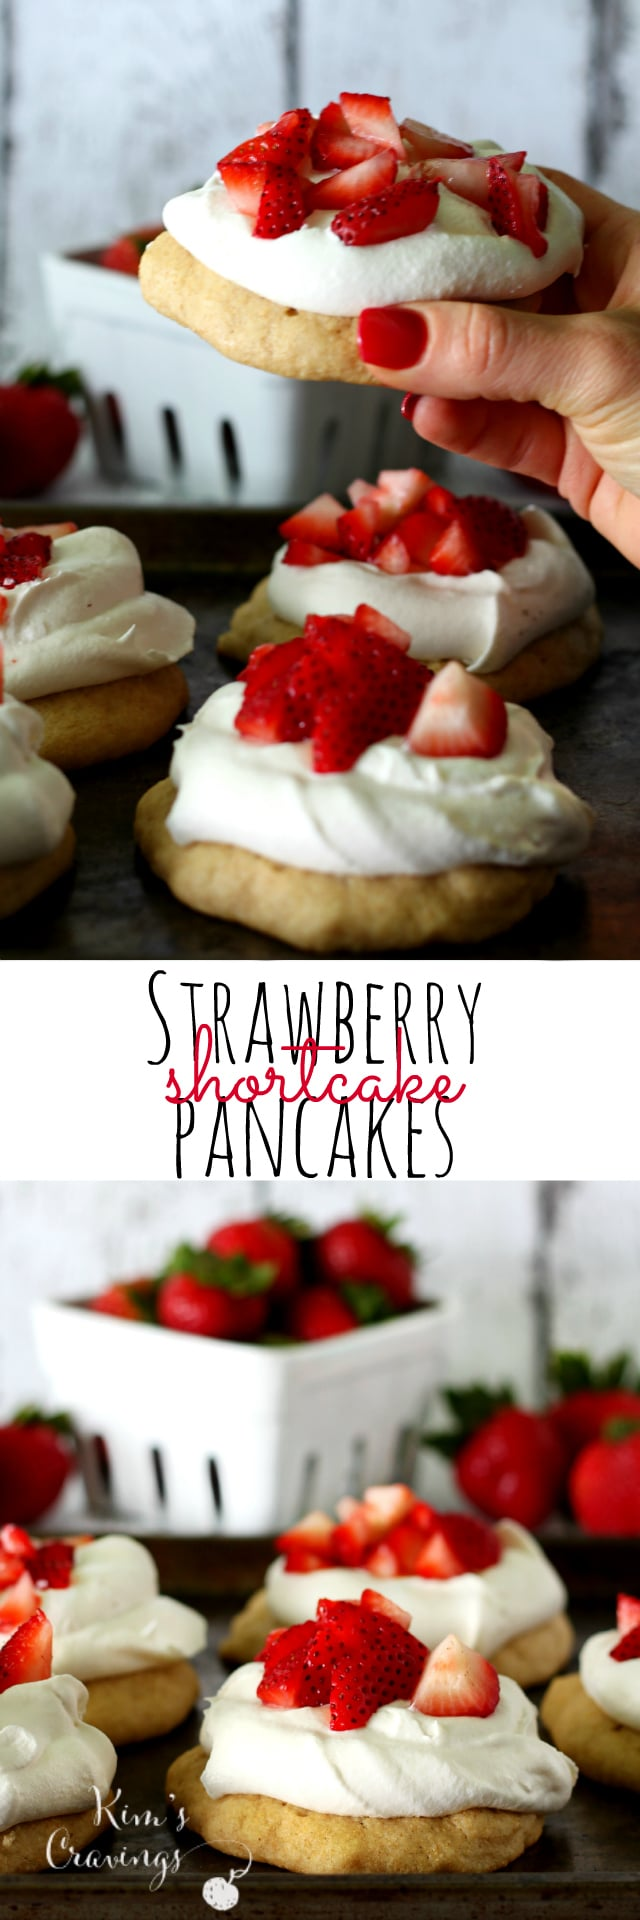 These Strawberry Shortcake Pancakes are easy as can be and so festive- perfect for celebrating Independence Day!